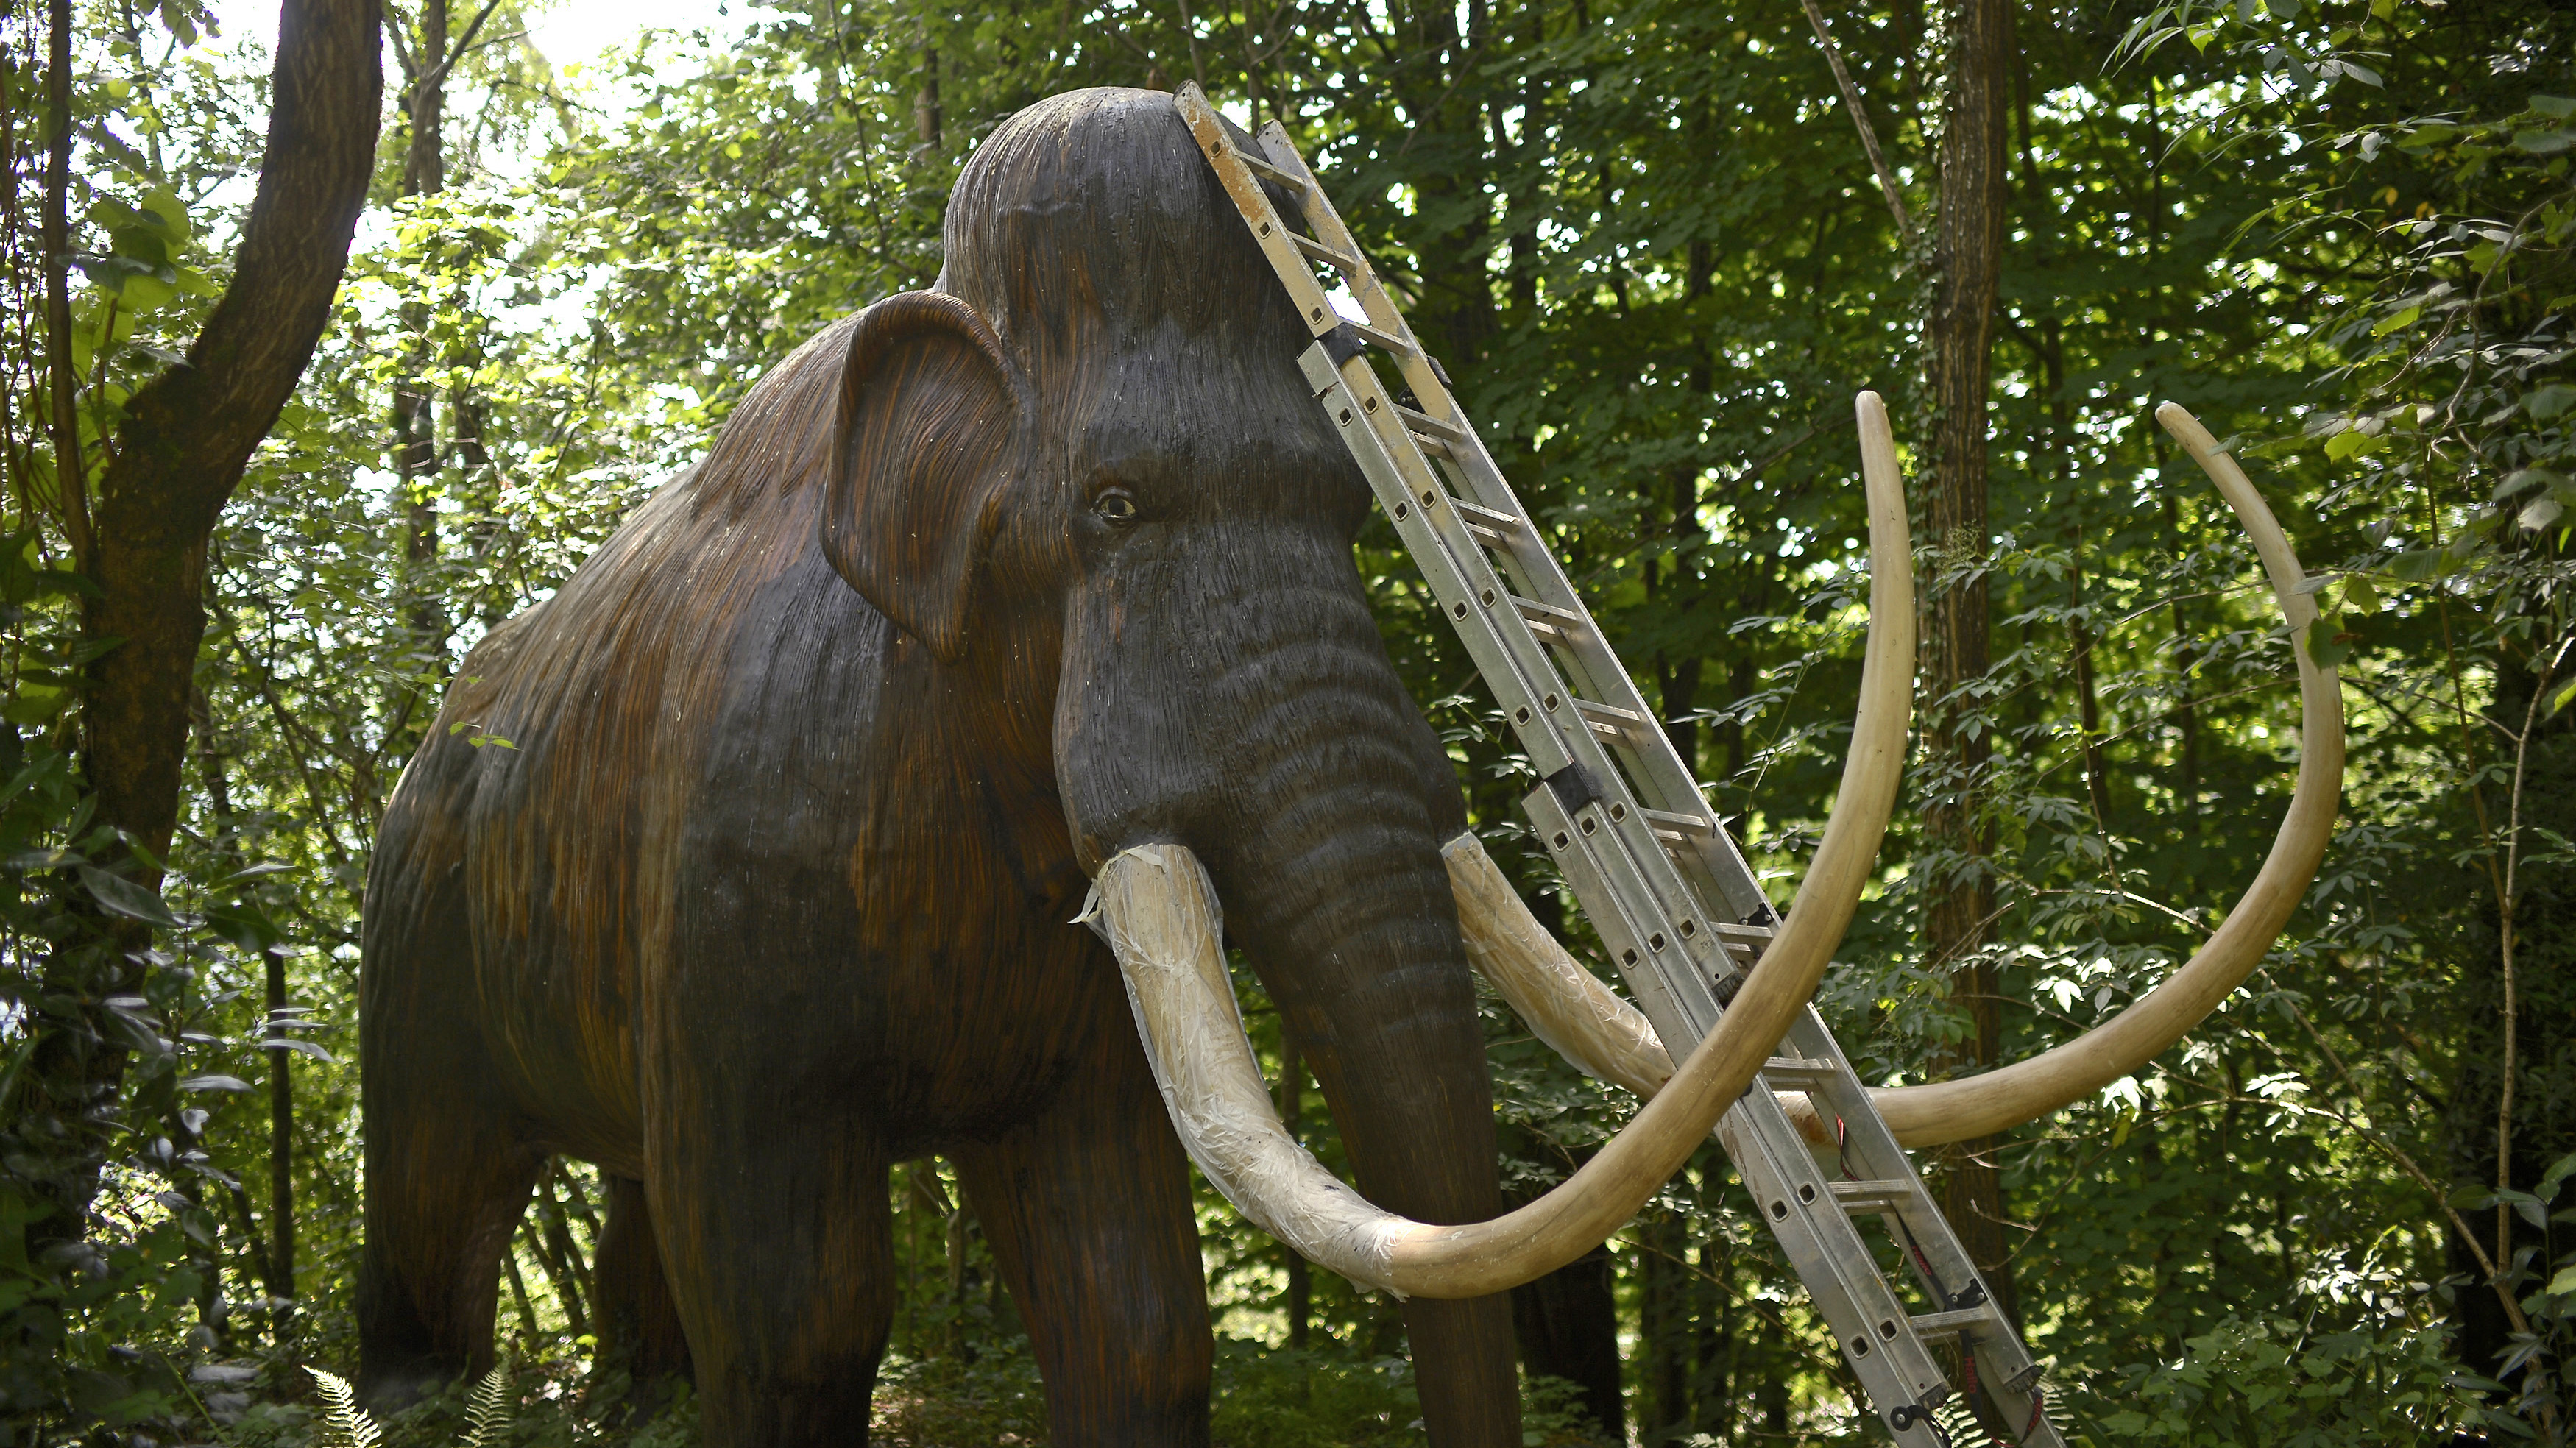 "A ladder leans against a life-size model of a Woolly Mammoth at the Karpin Abentura park in the Karrantza valley, outside Bilbao July 26, 2014. The park, housing wildlife and model dinosaur areas, reopened on Saturday following damage due to heavy rains. According to the information plaque, ""Much of what the world knows about Woolly Mammoths comes from Spanish and French cave drawings. The last mammoths died 10000 years ago, millions of years after the dinosaurs became extinct."" REUTERS/Vincent West (SPAIN - Tags: ANIMALS SOCIETY) - RTR40846"